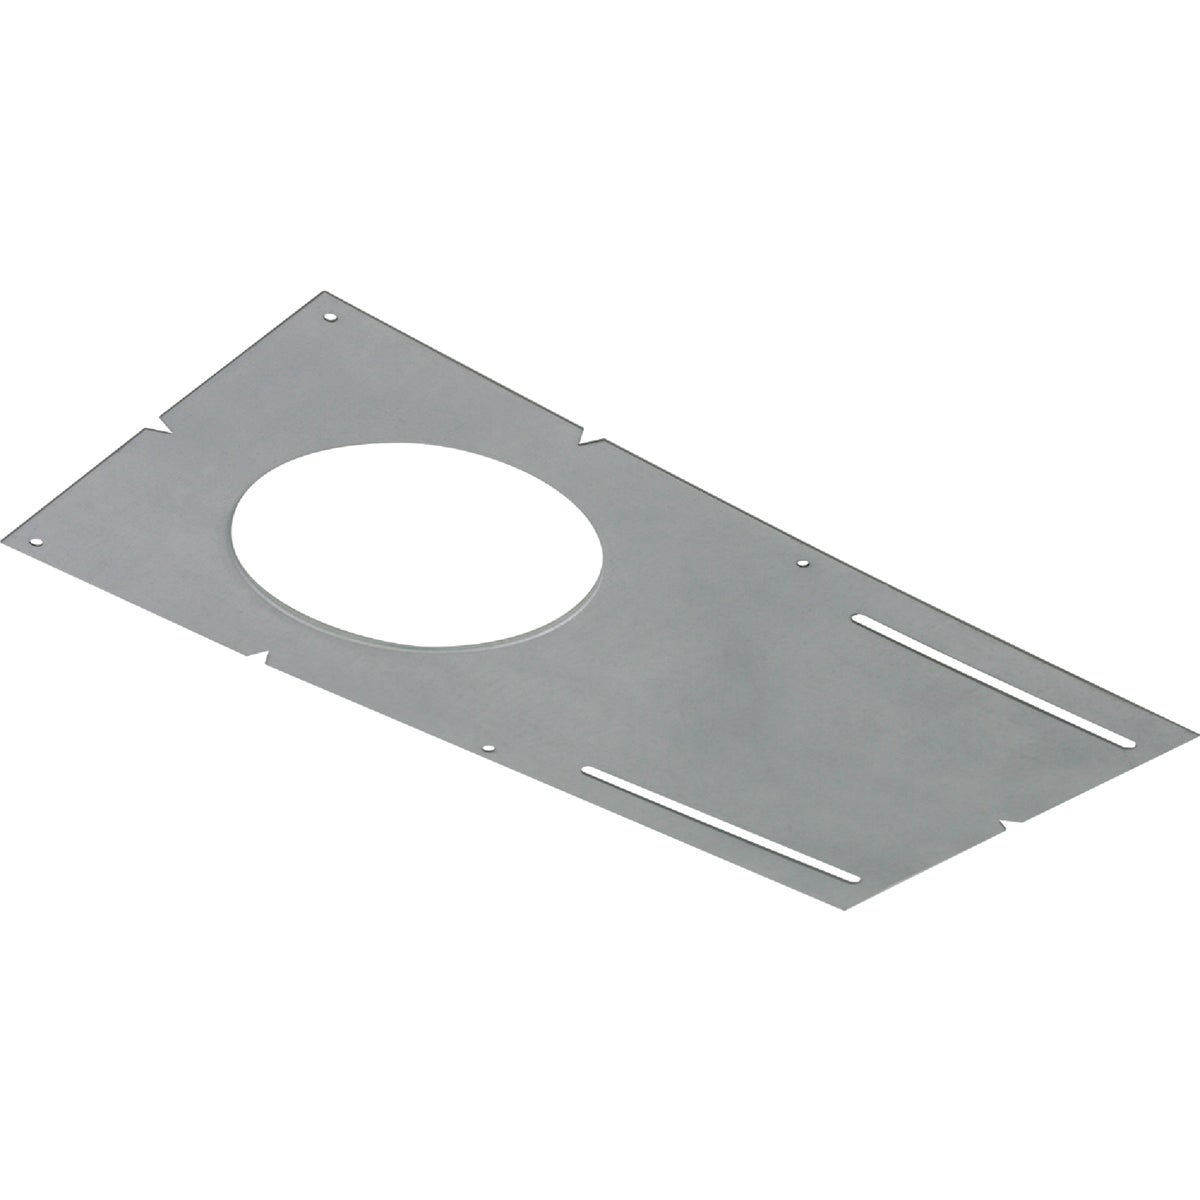 PREMOUNTING PLATE